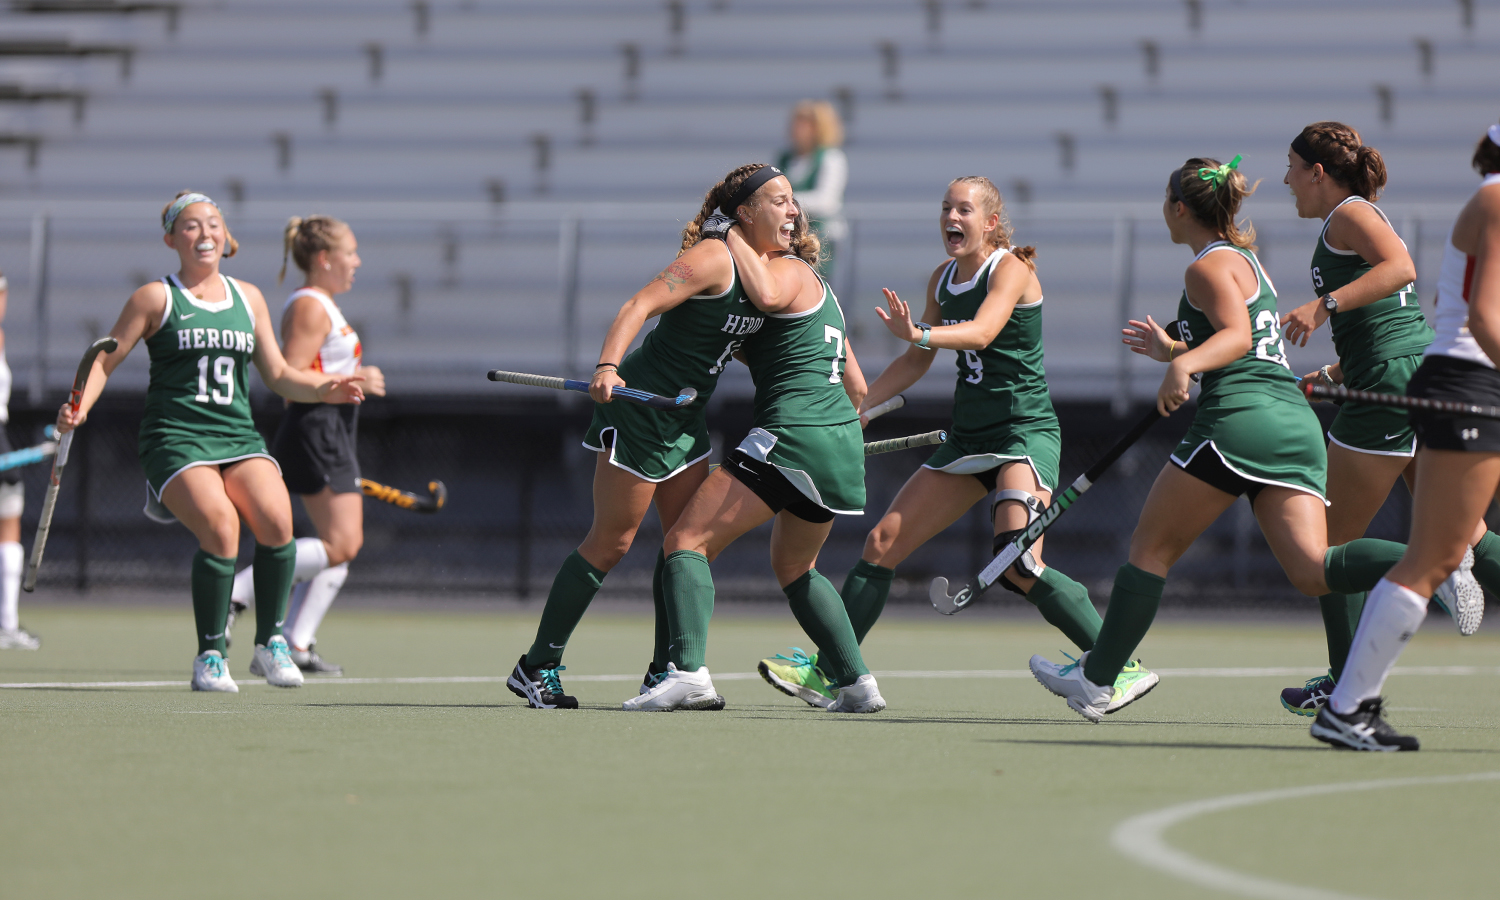 Hannah Wood '18 celebrates after a goal during the Heron's 4-3 win over Ursinus College.